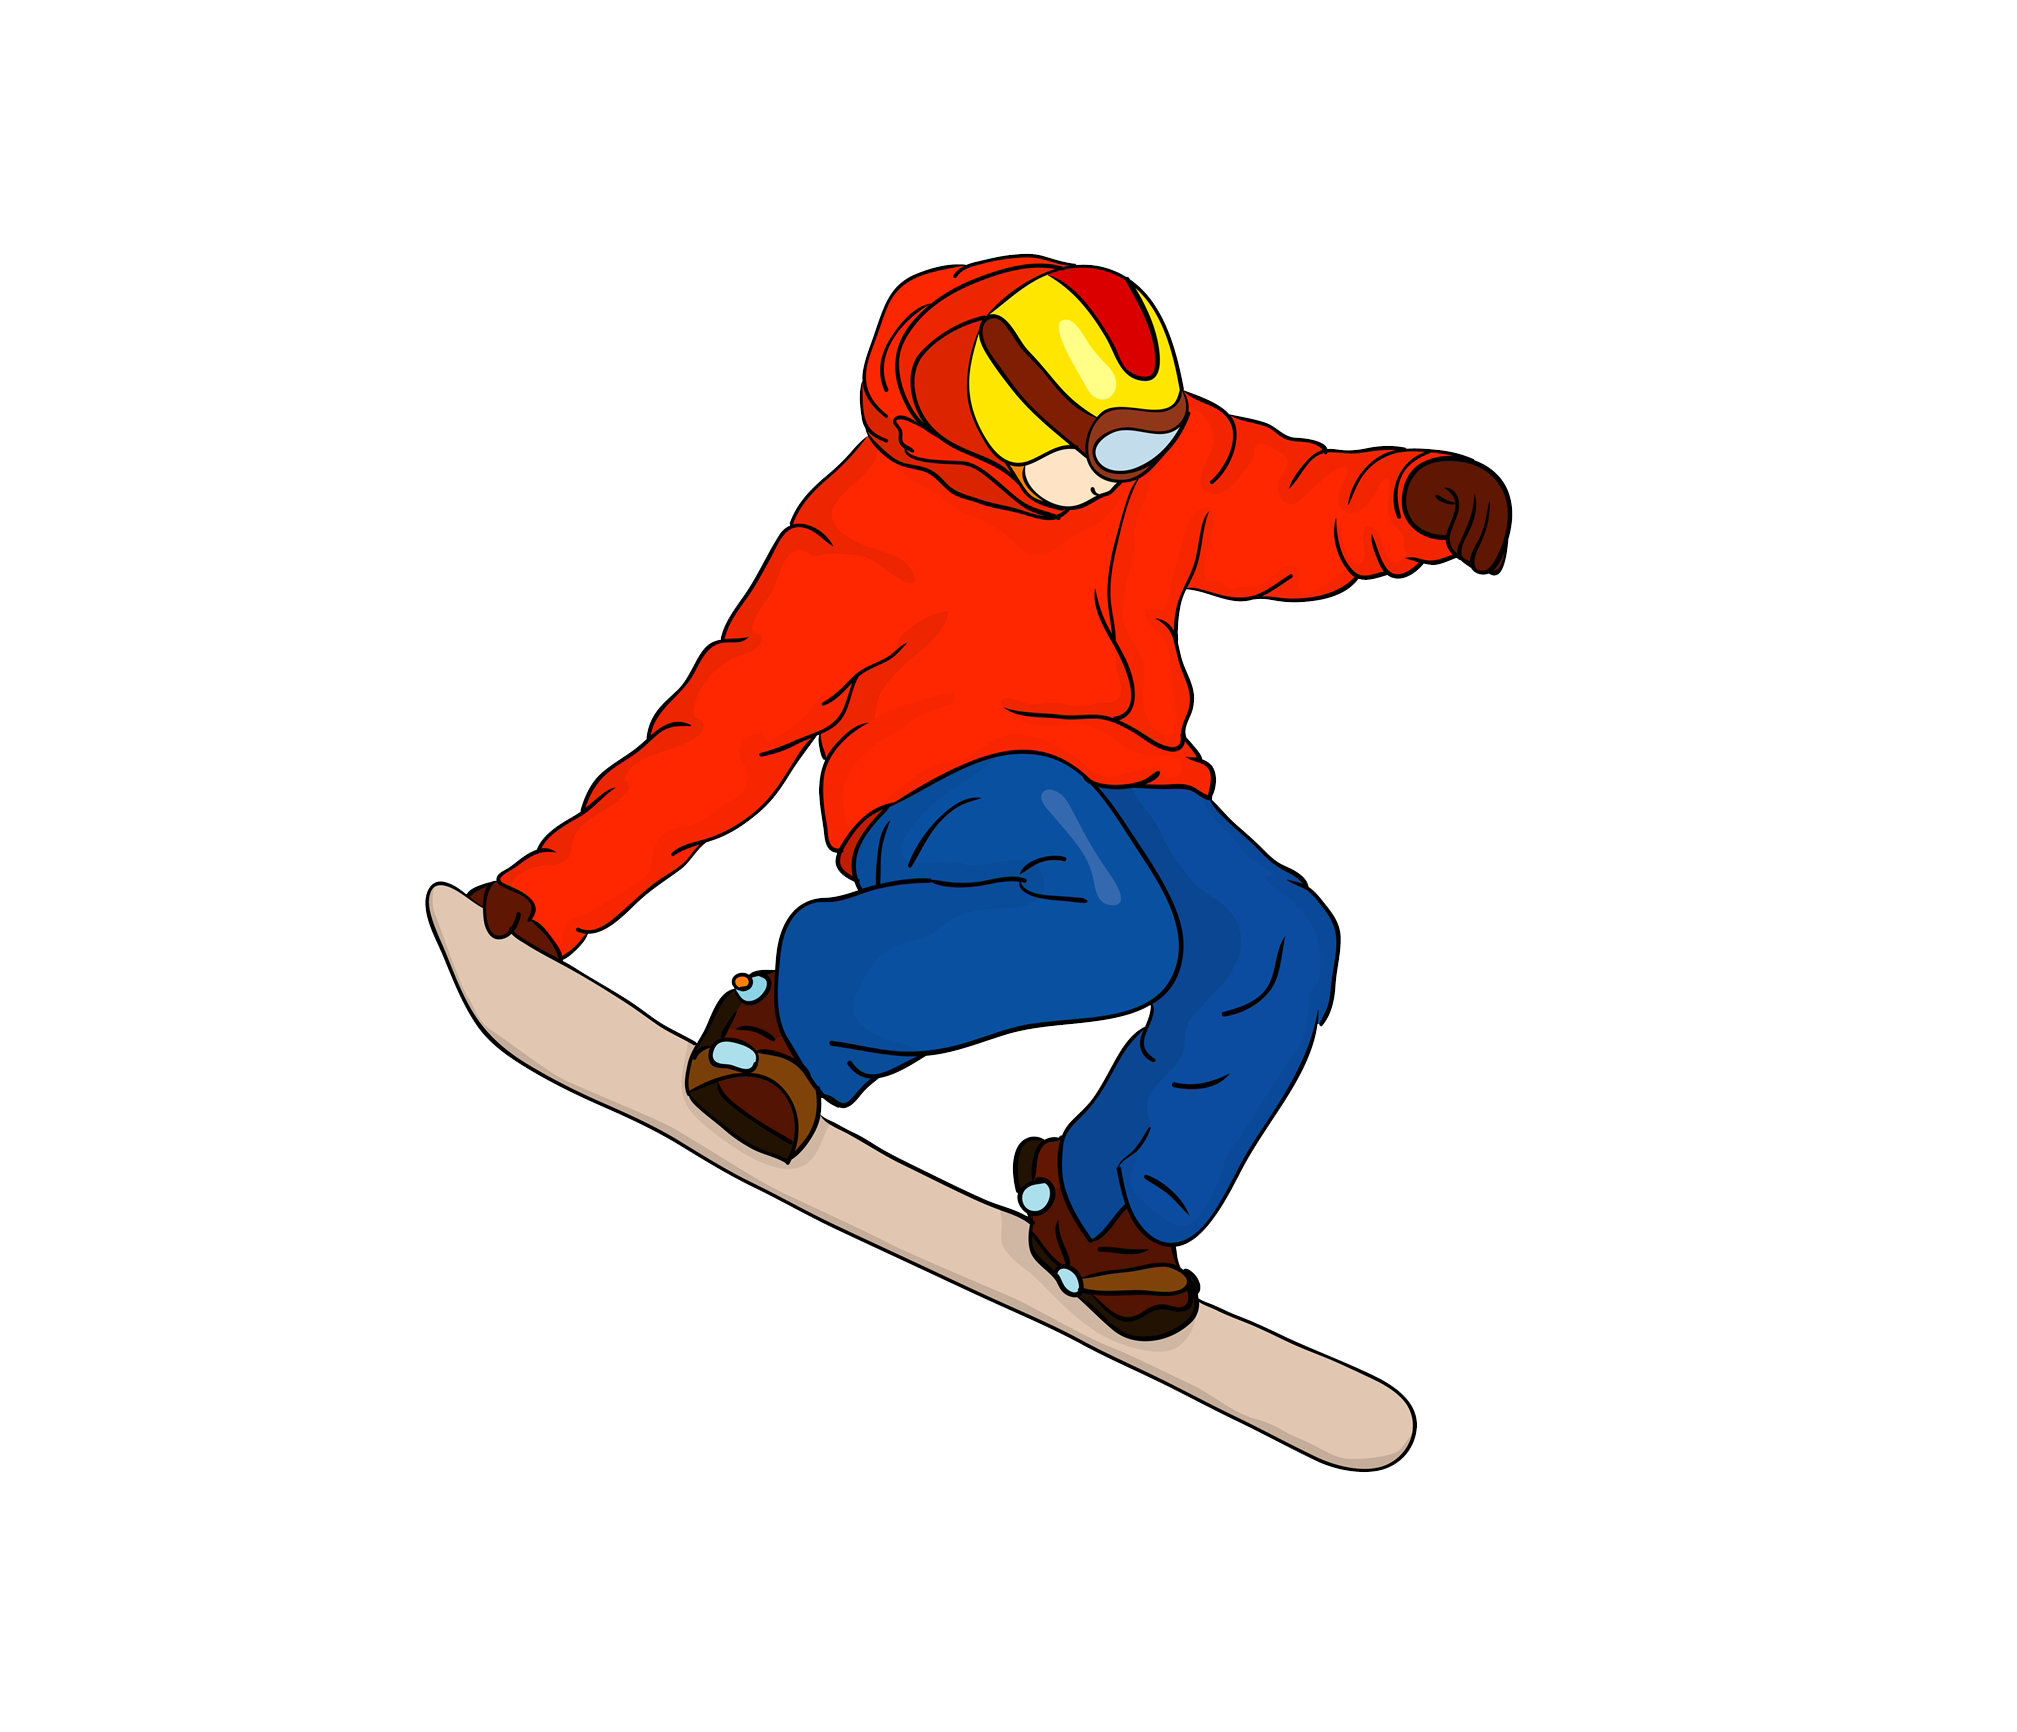 snowboarder drawing animated